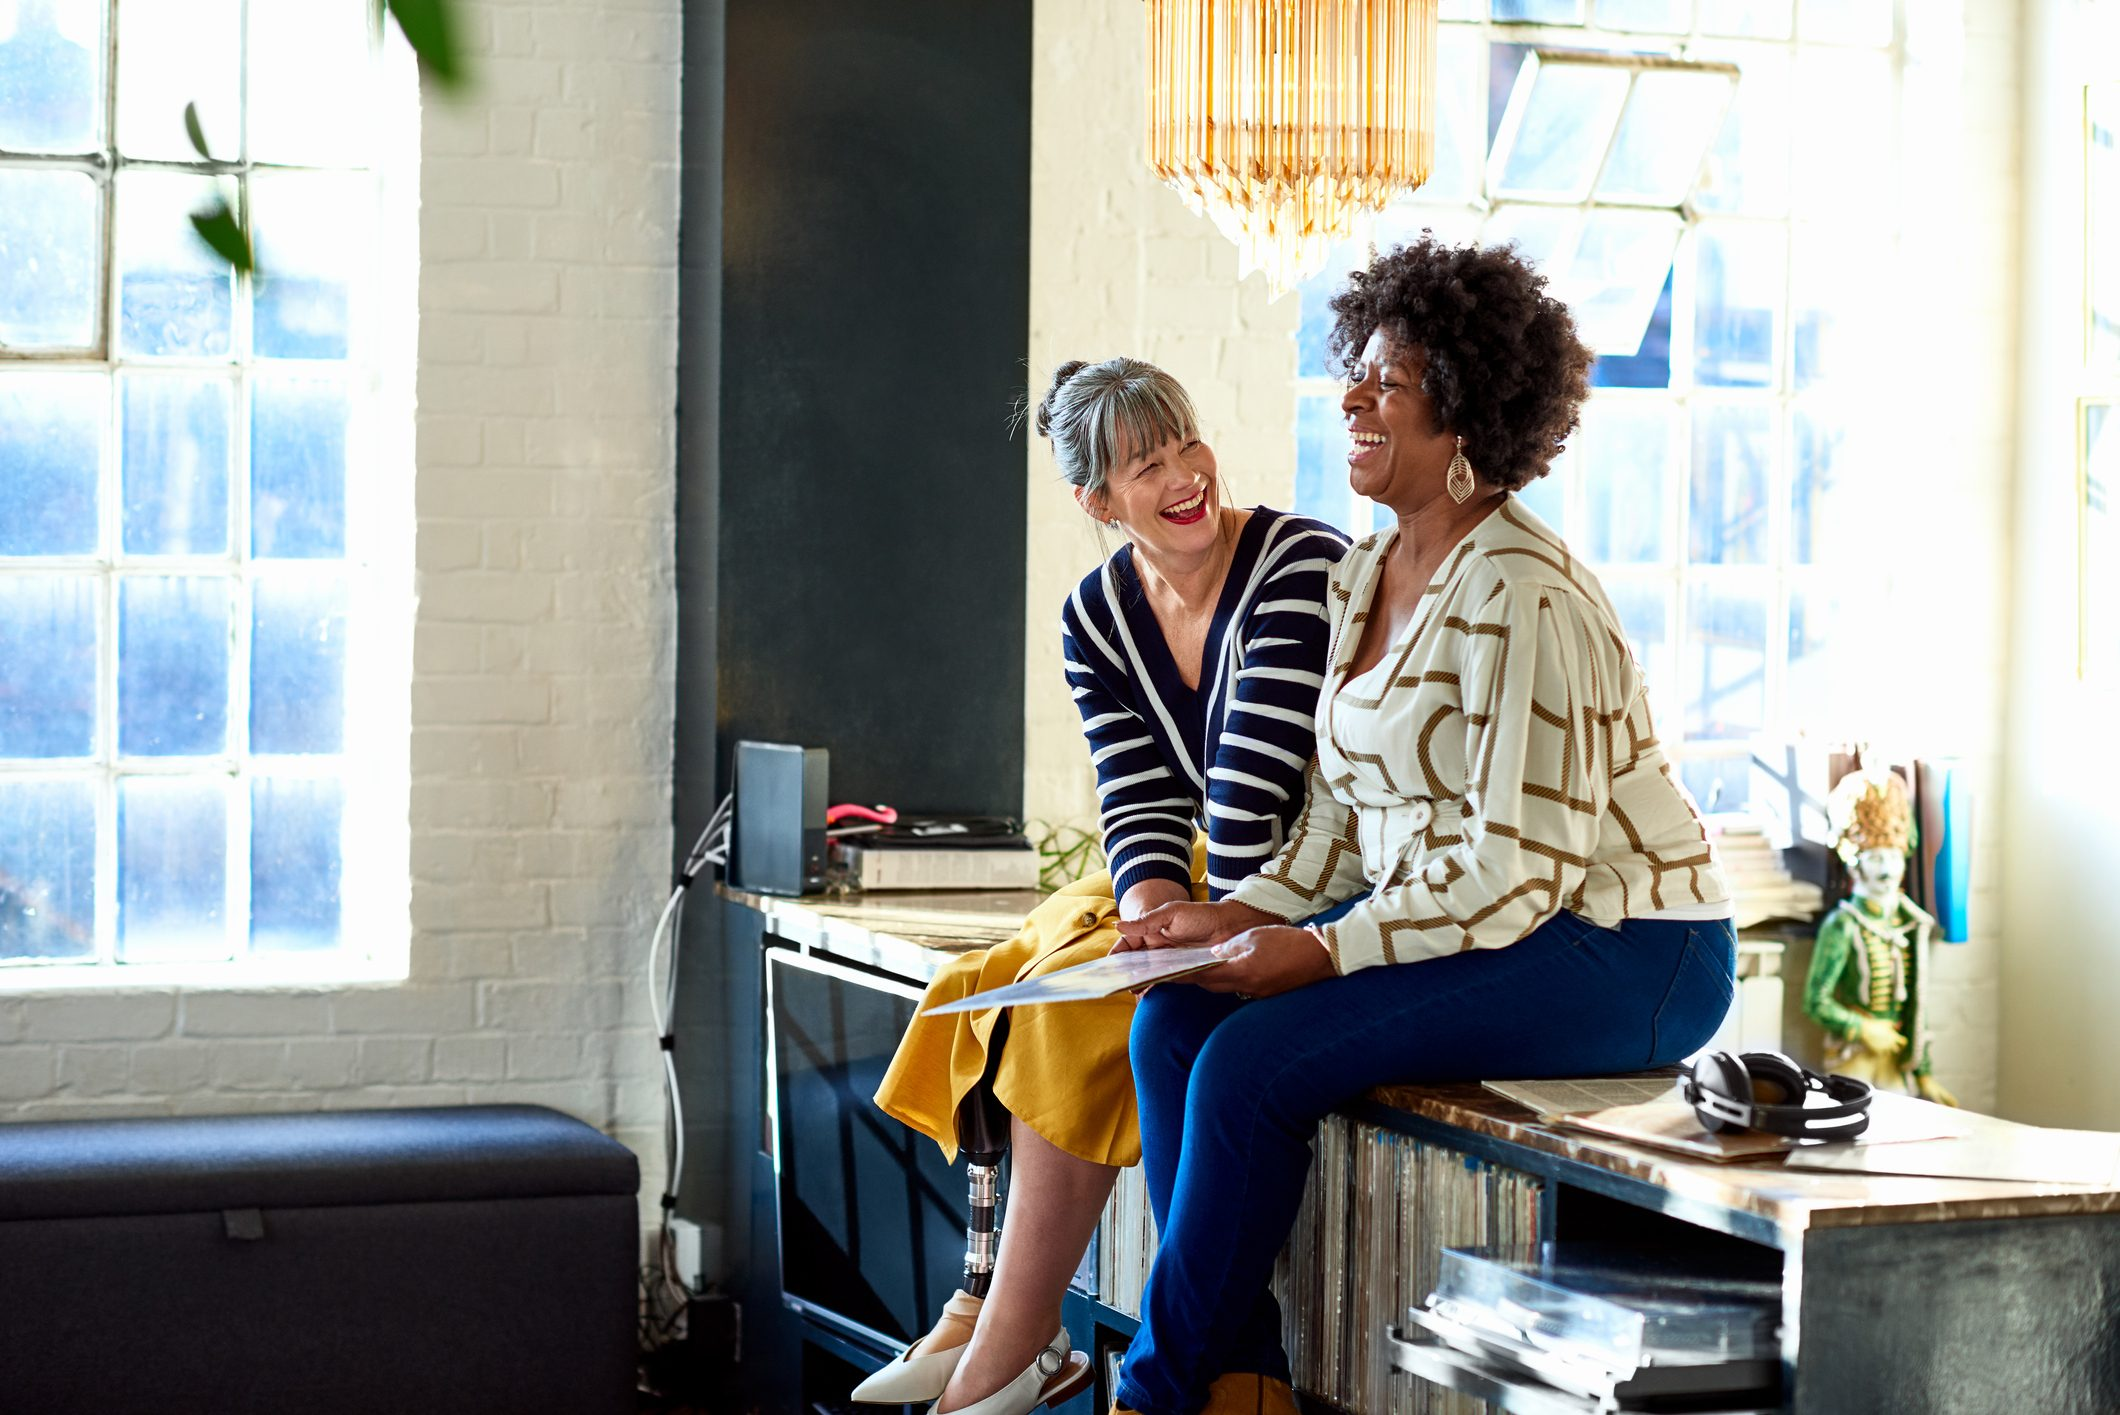 Mature women laughing together in stylish loft apartment